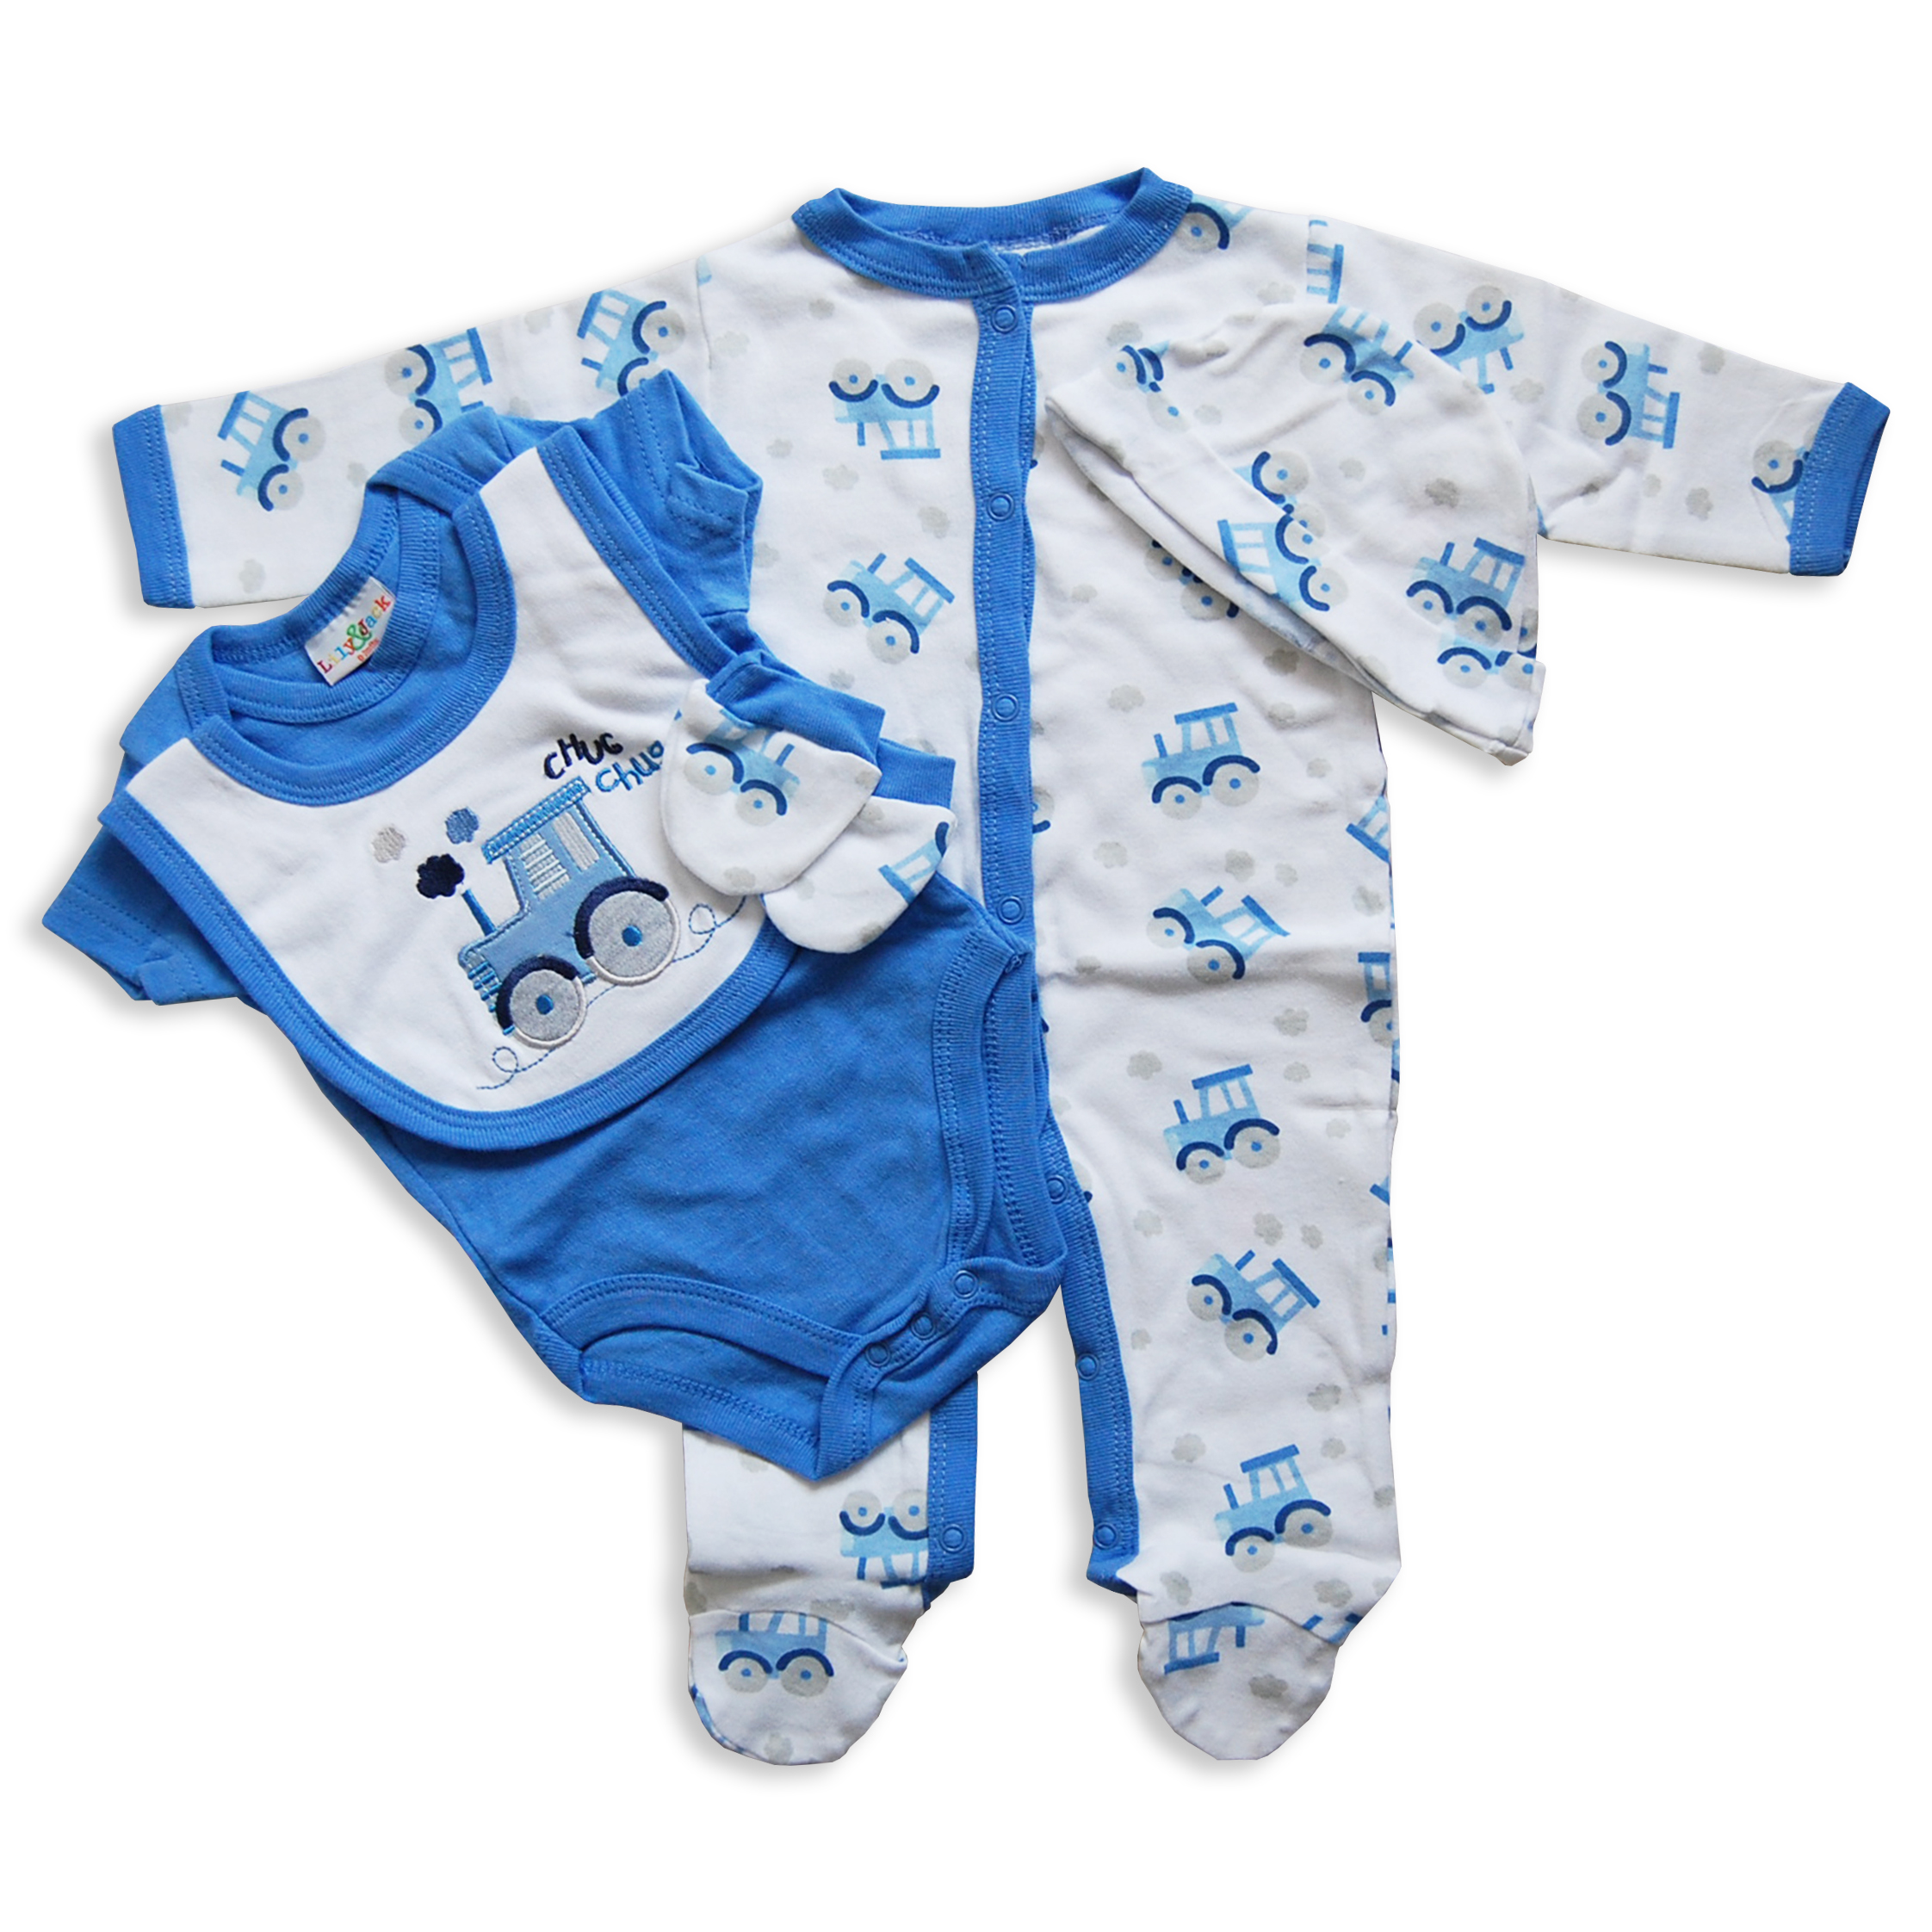 5 Piece Baby Boys Girls Layette Clothing Gift Set Box by ...